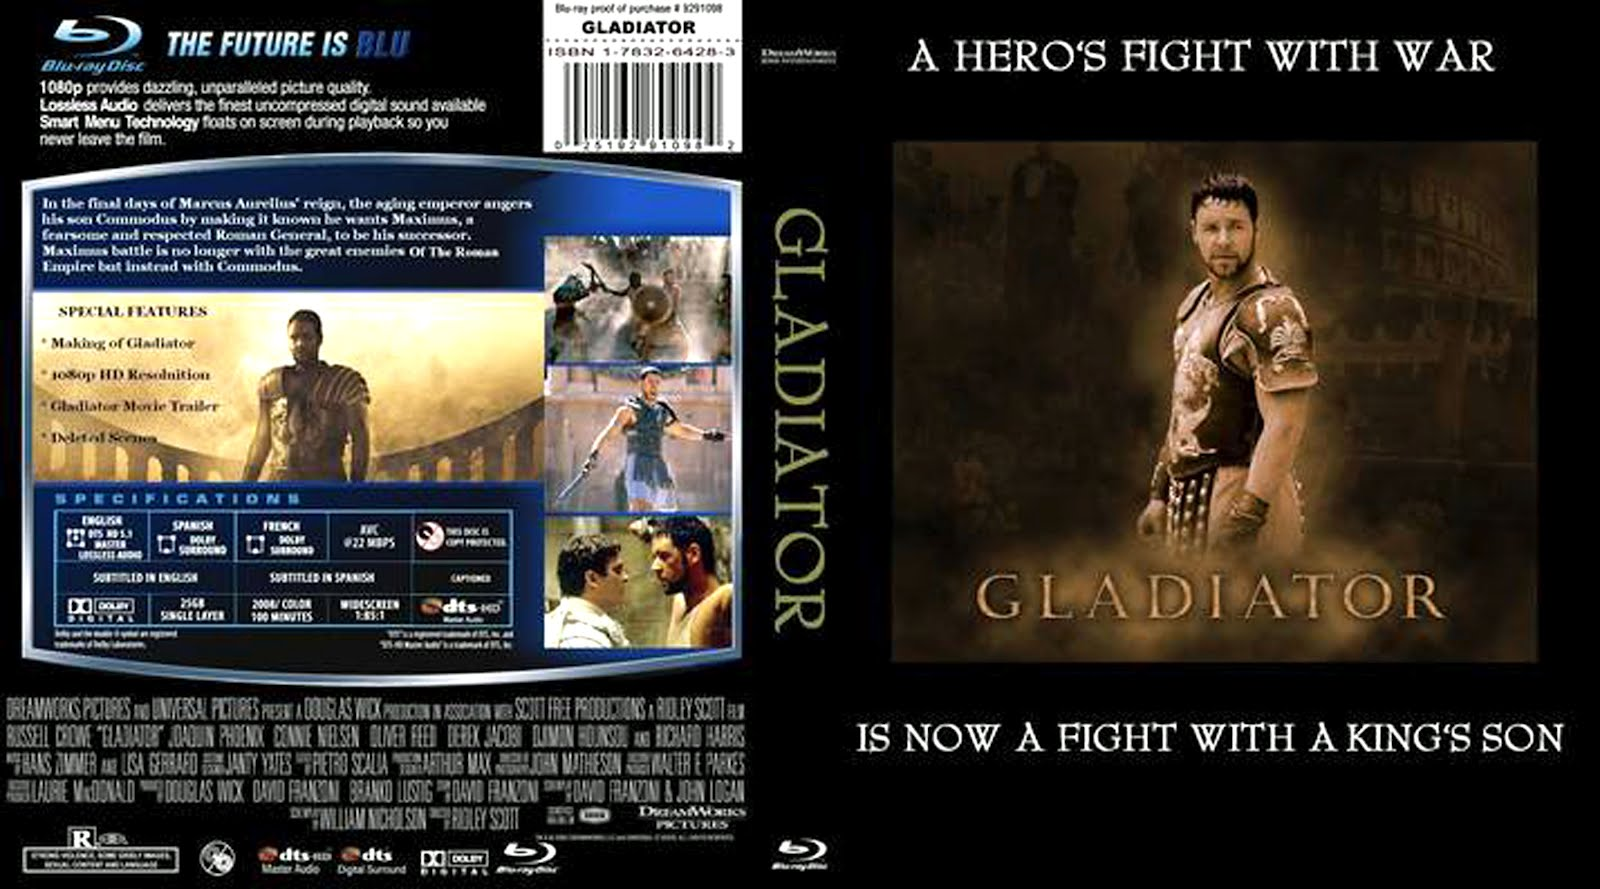 Gladiator Blu-ray Dvd Front Cover